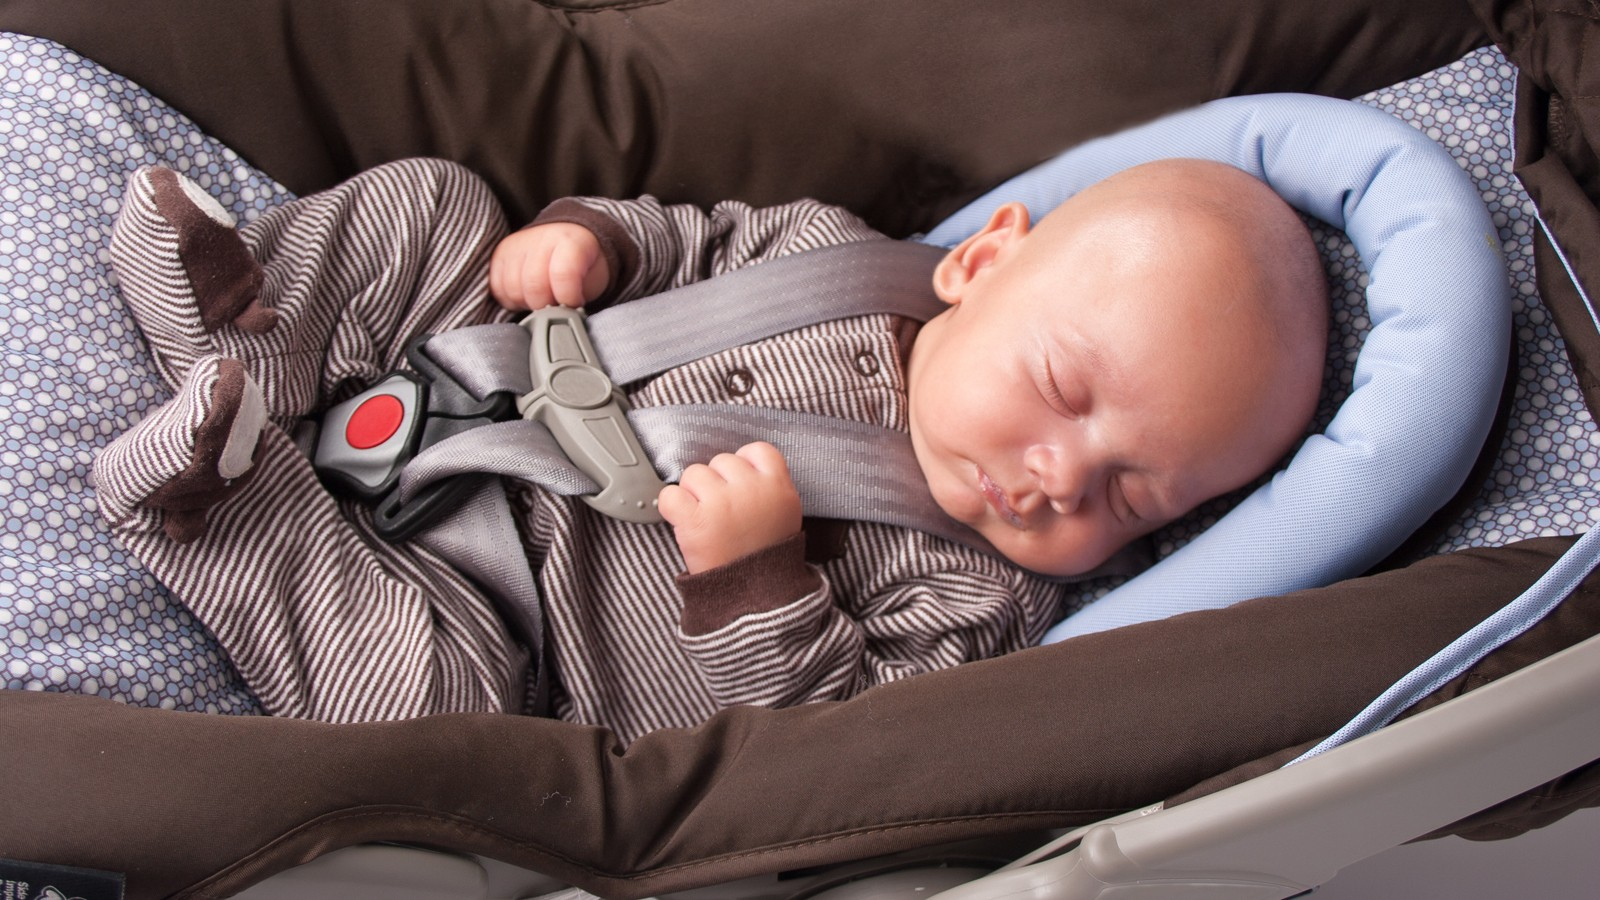 Baby Boy in Safety Seat